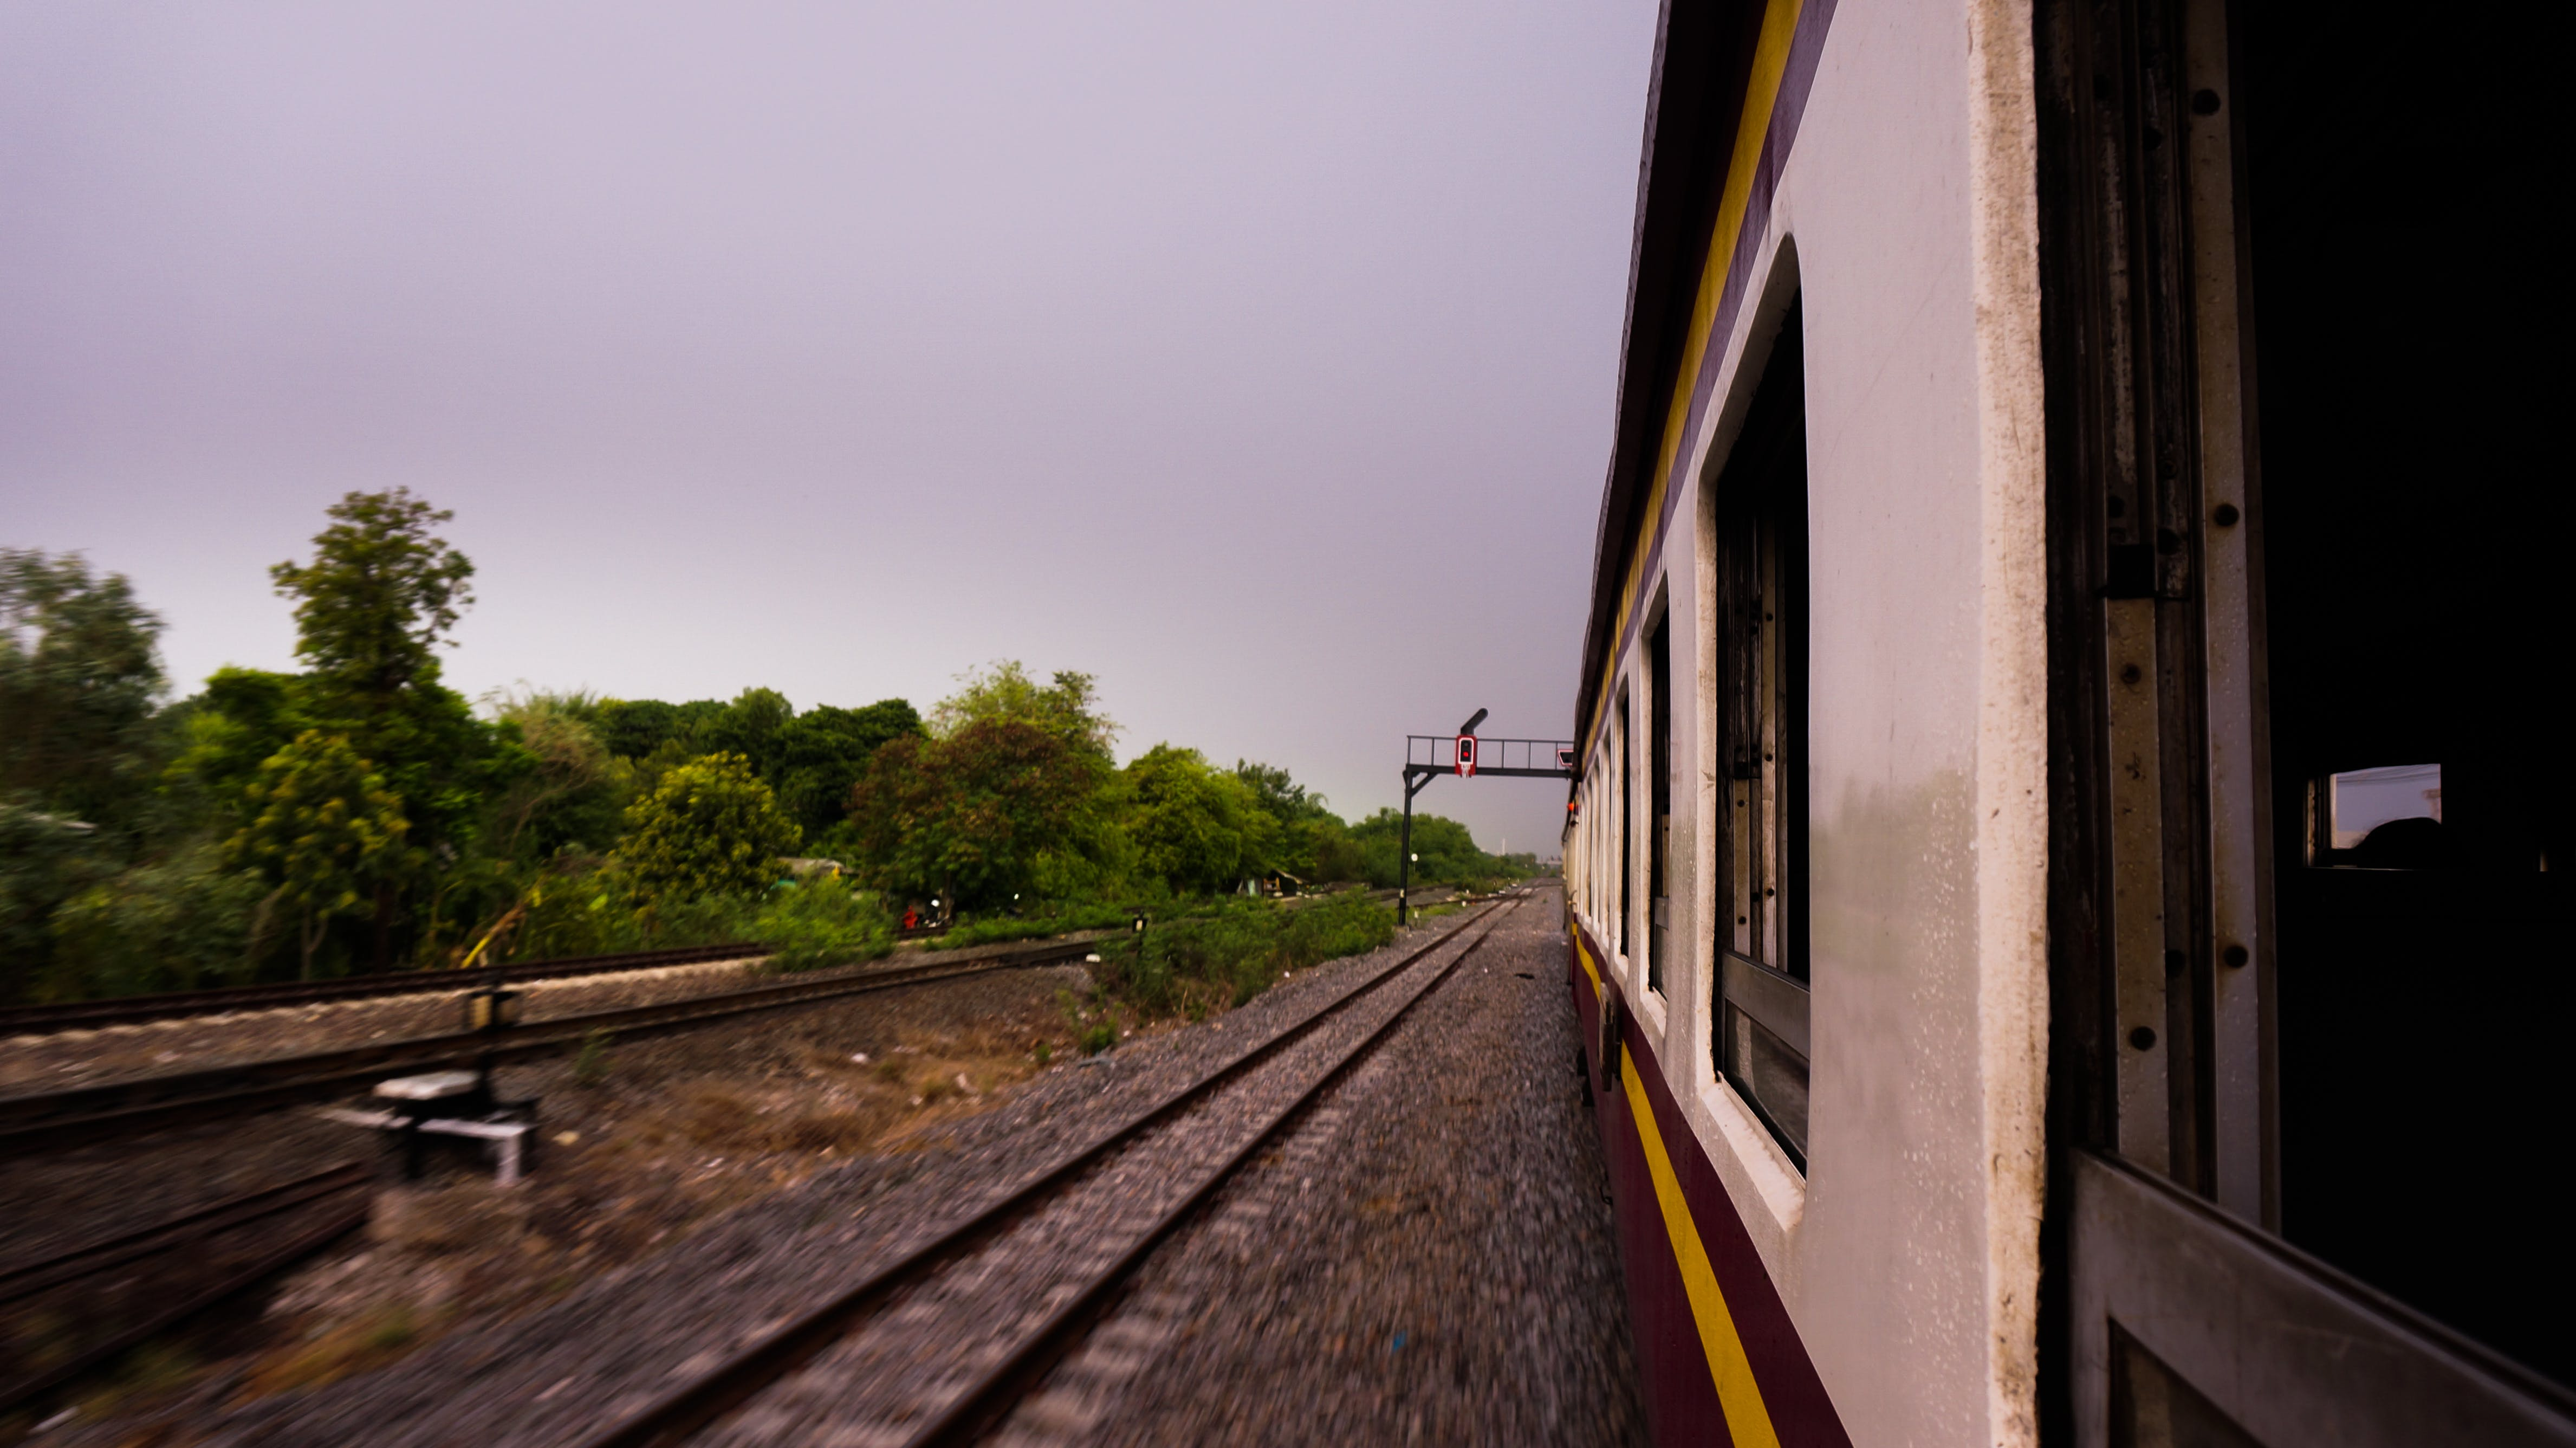 Free stock photo of motion, motion blur, railroad track, train